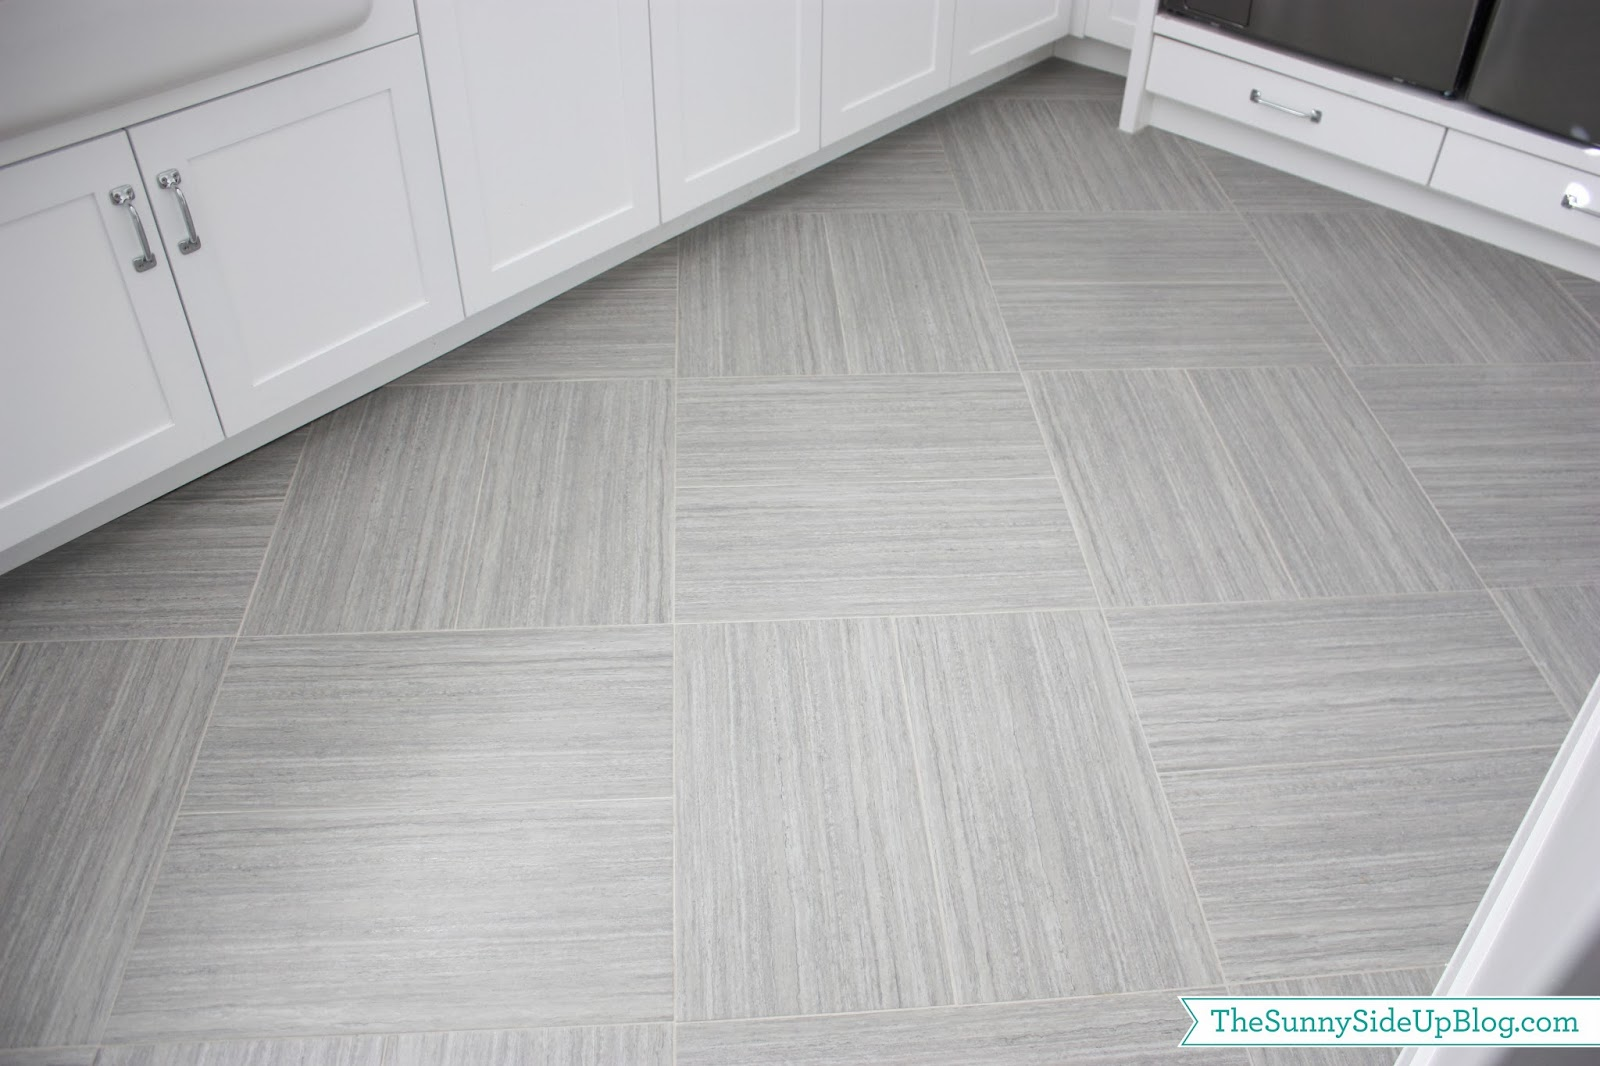 Tile flooring for laundry room interior design tile flooring traditional laundry room other by gladiator downstairs laundry room the sunny side up blog dailygadgetfo Choice Image